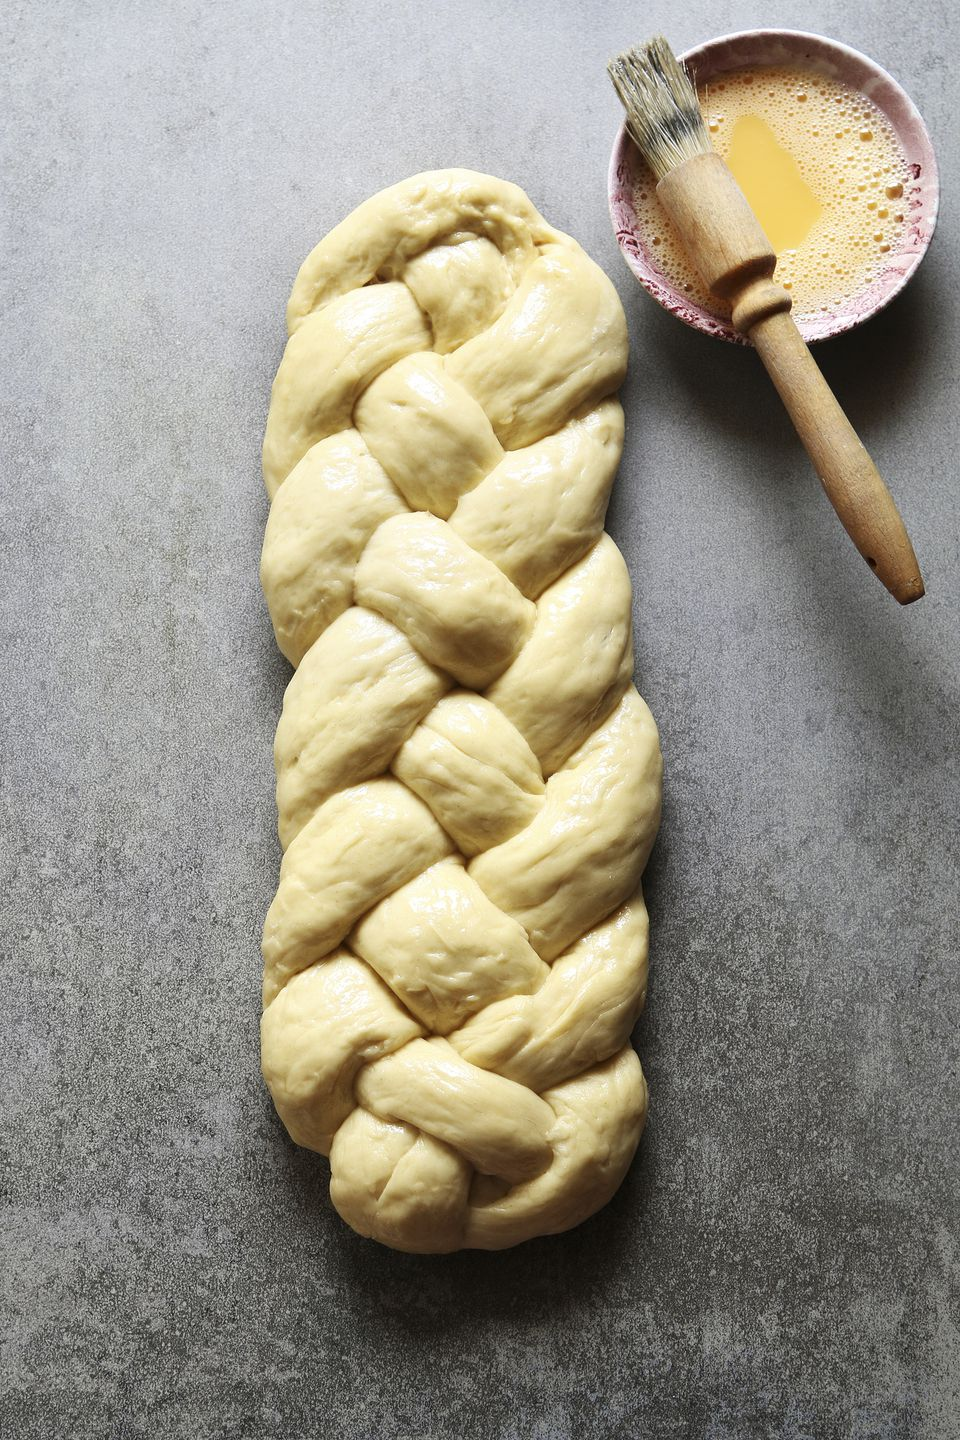 Braided Challah bread dough